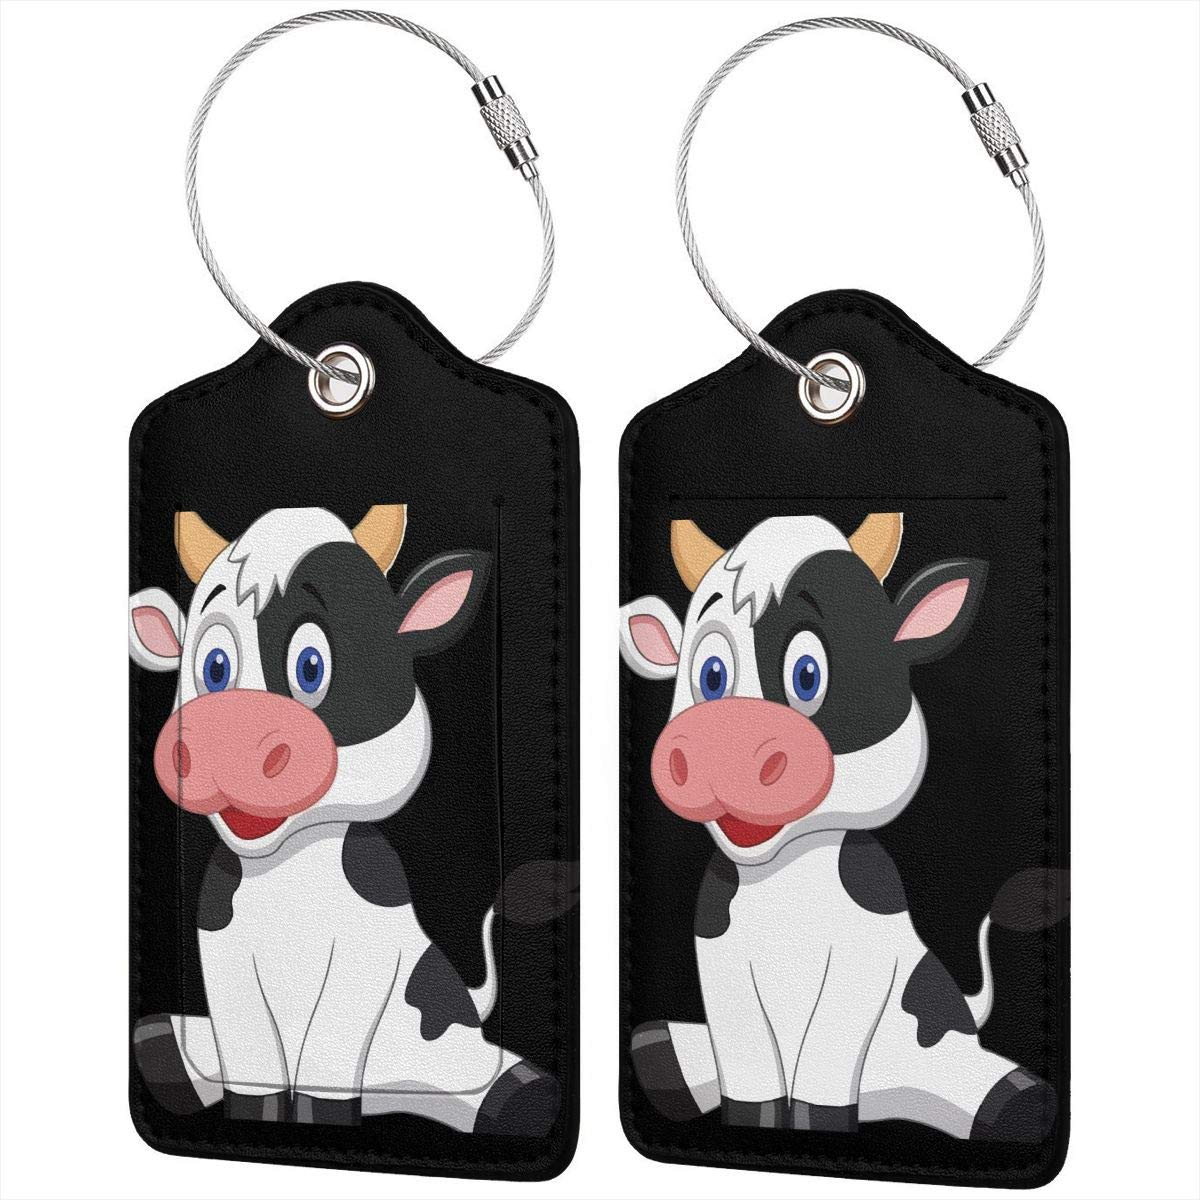 Cute Baby Cow Cartoon Travel Luggage Tags With Full Privacy Cover Leather Case And Stainless Steel Loop